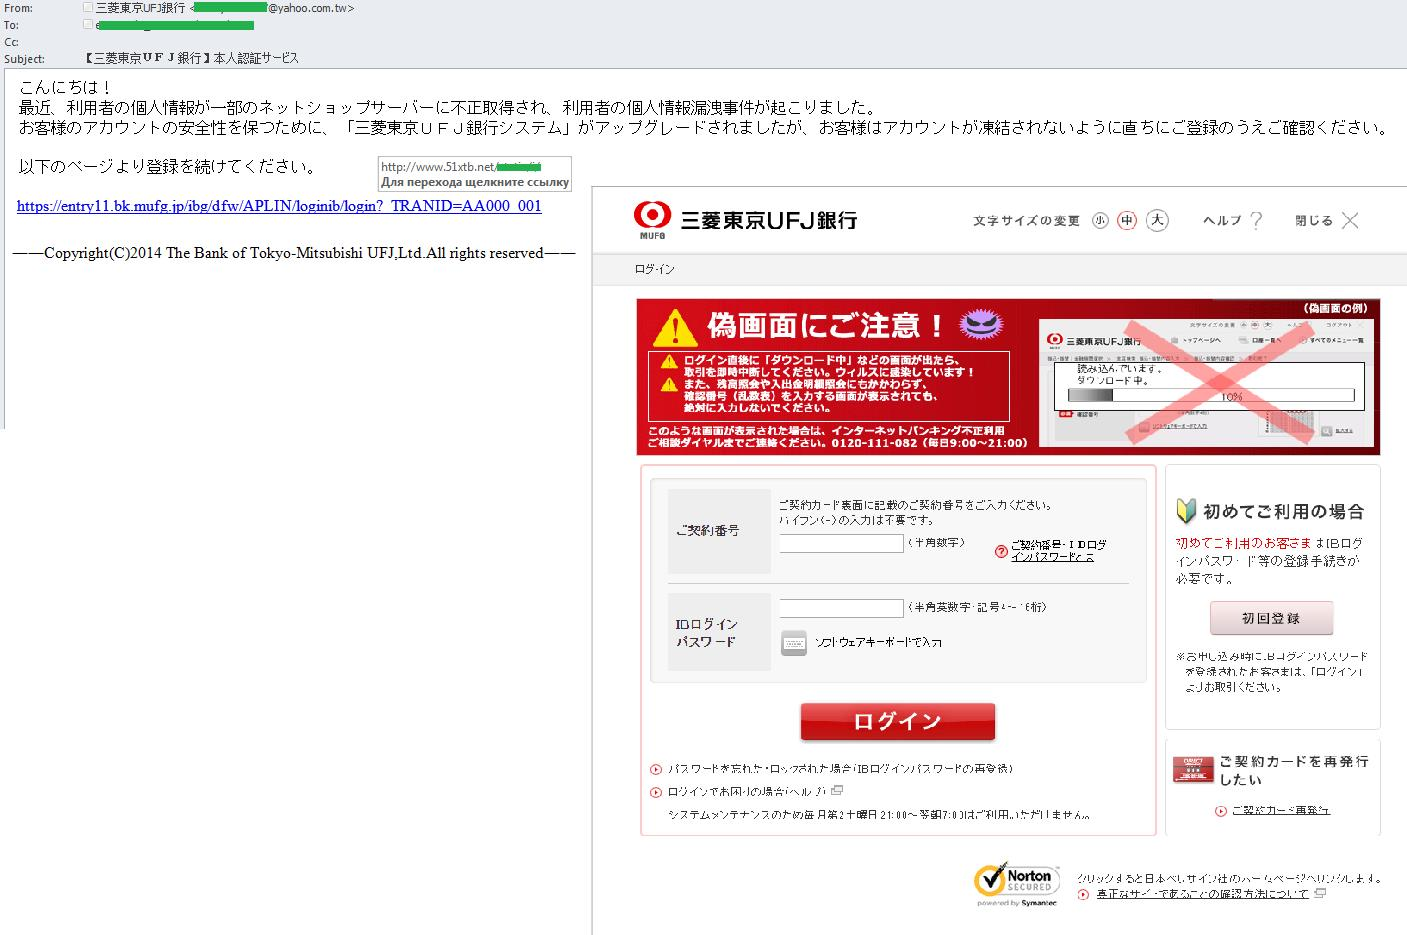 Japanese_phishing_1